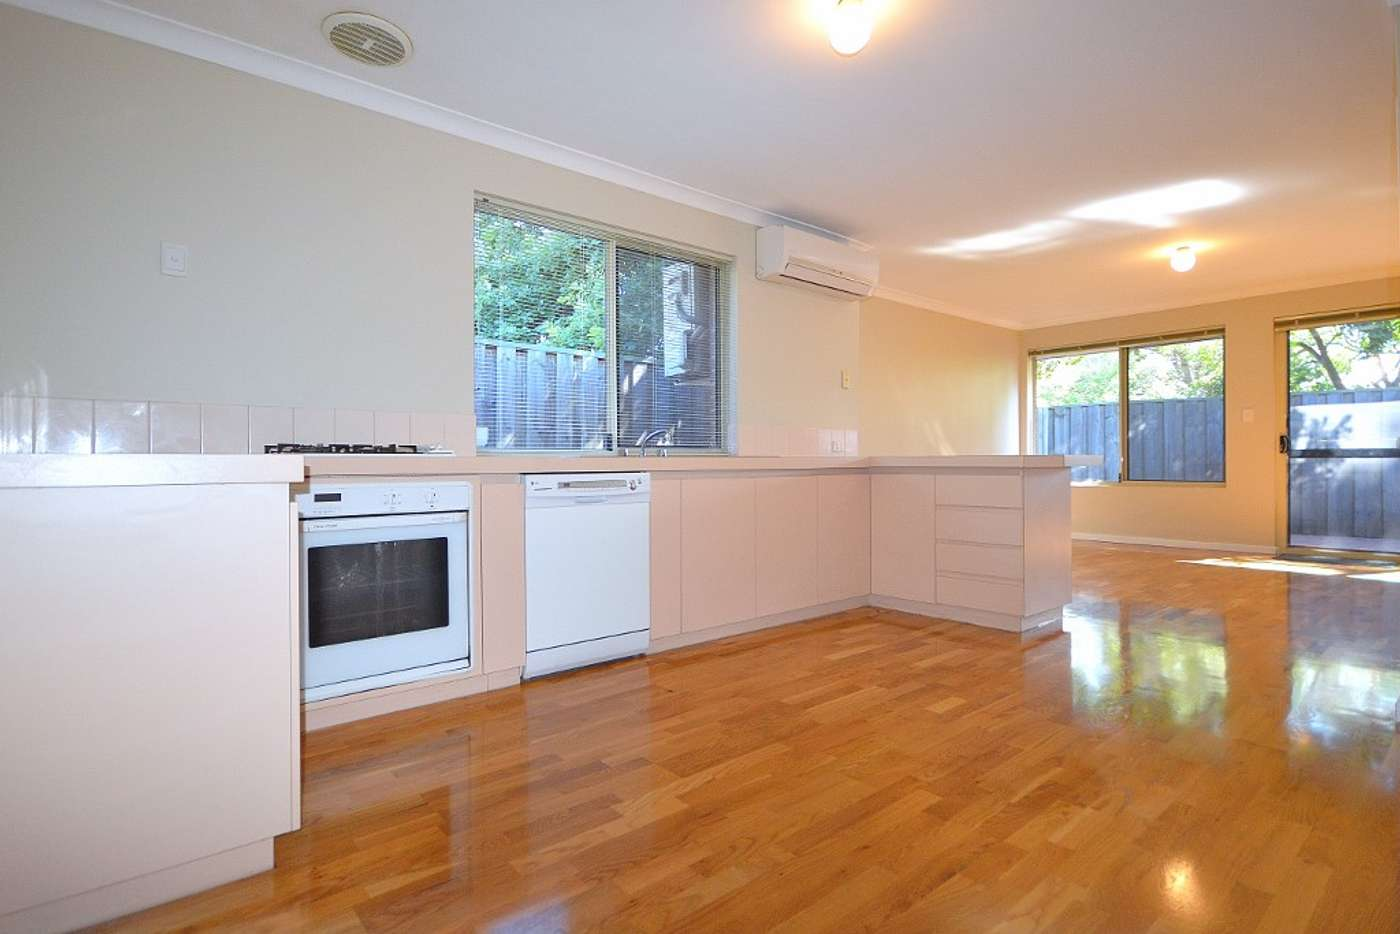 Main view of Homely house listing, 71 Roberts Street, Bayswater WA 6053